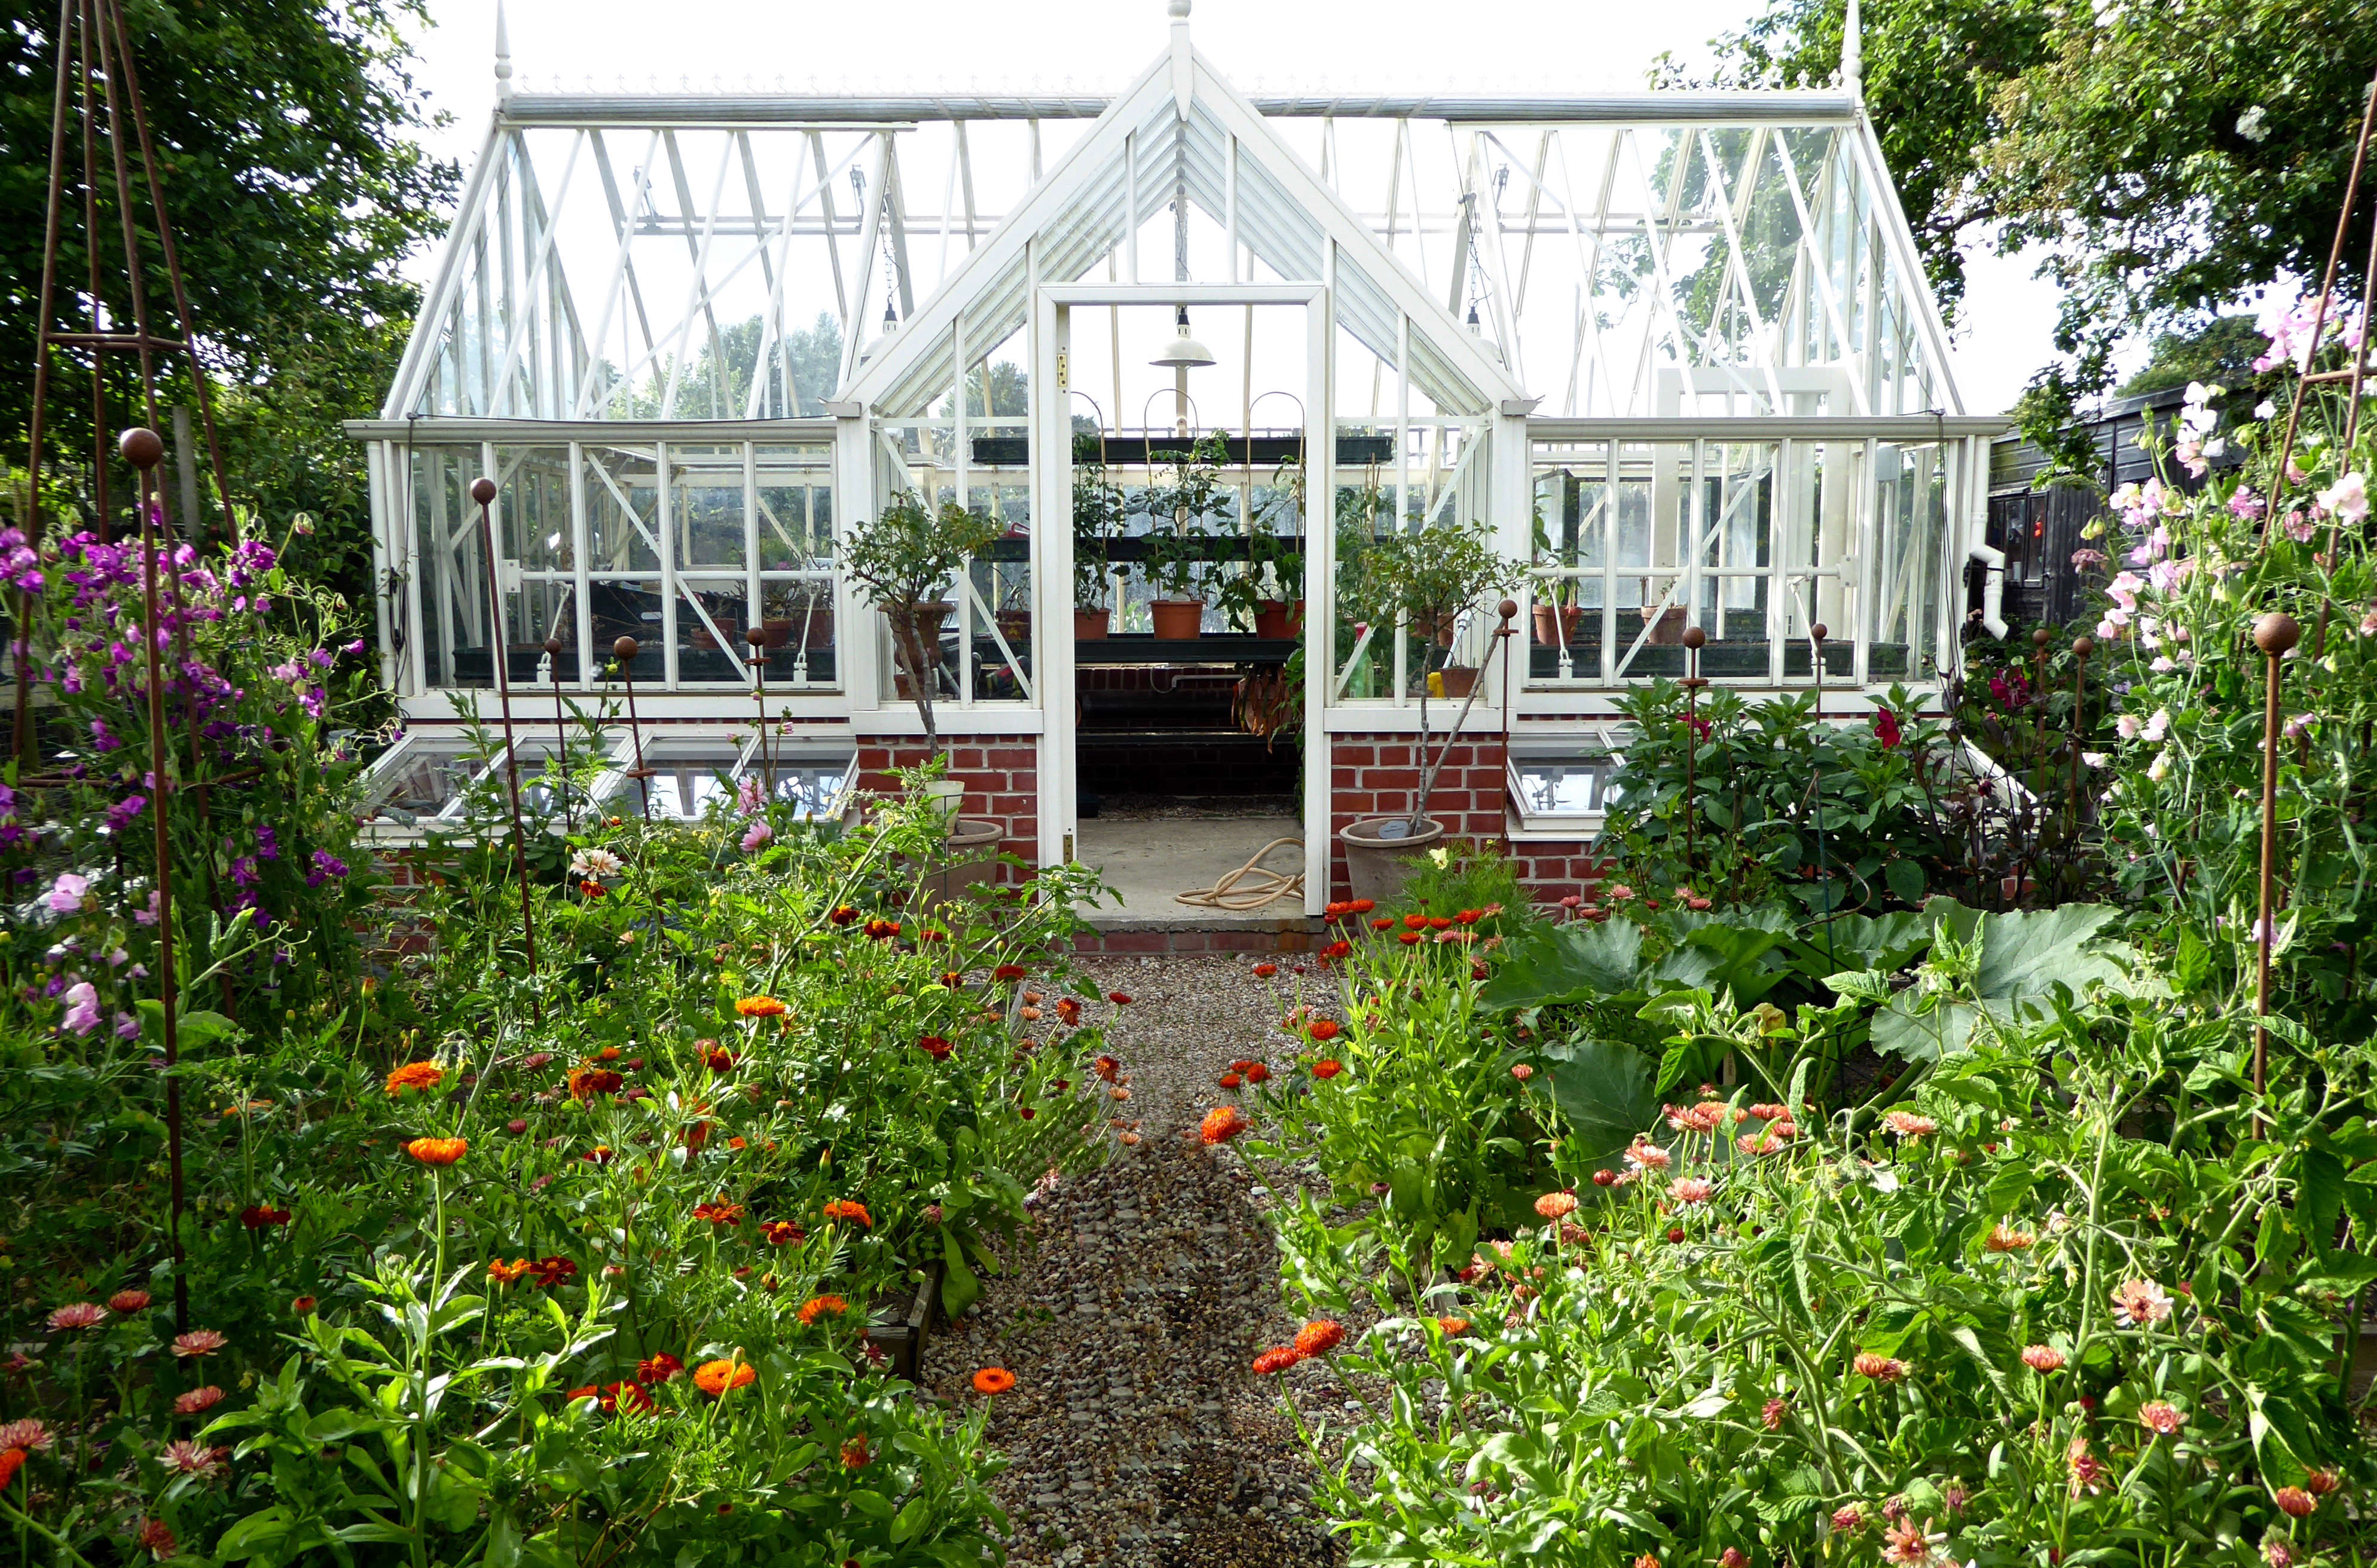 Above: When Catherine Moved Here, She Invested In A Serious Greenhouse From  Alitex Together With Cold Frames, A Misting Zone For Nurturing Cuttings And  ...